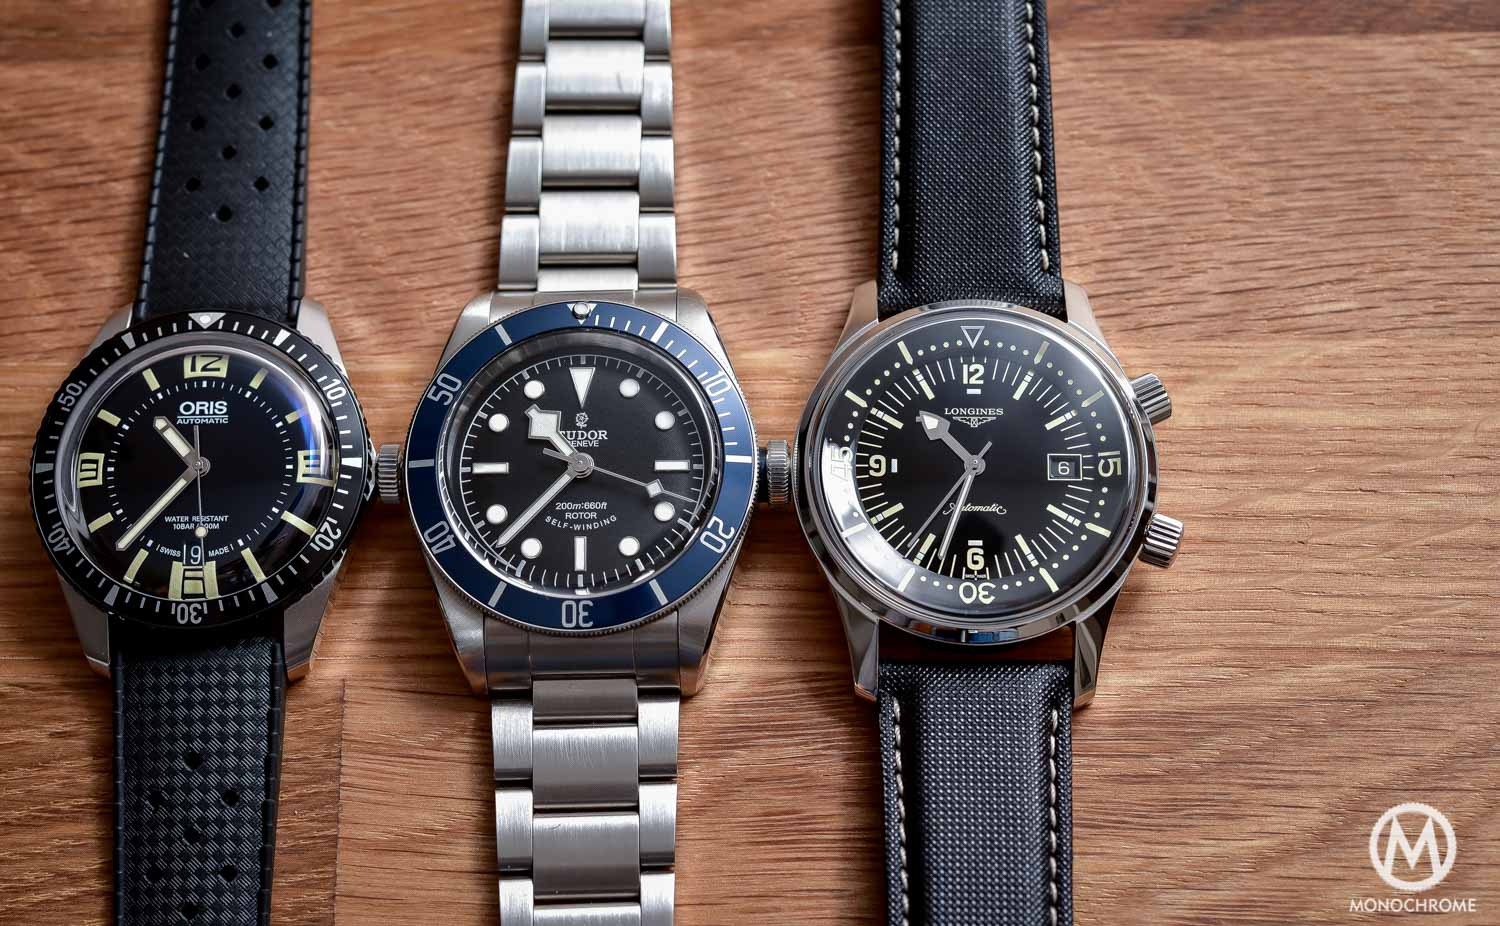 Comparative Review - 3 affordable & vintage-inspired dive watches - Tudor Black Bay - Oris Divers Sixty Five - Longines Legend Diver - 3